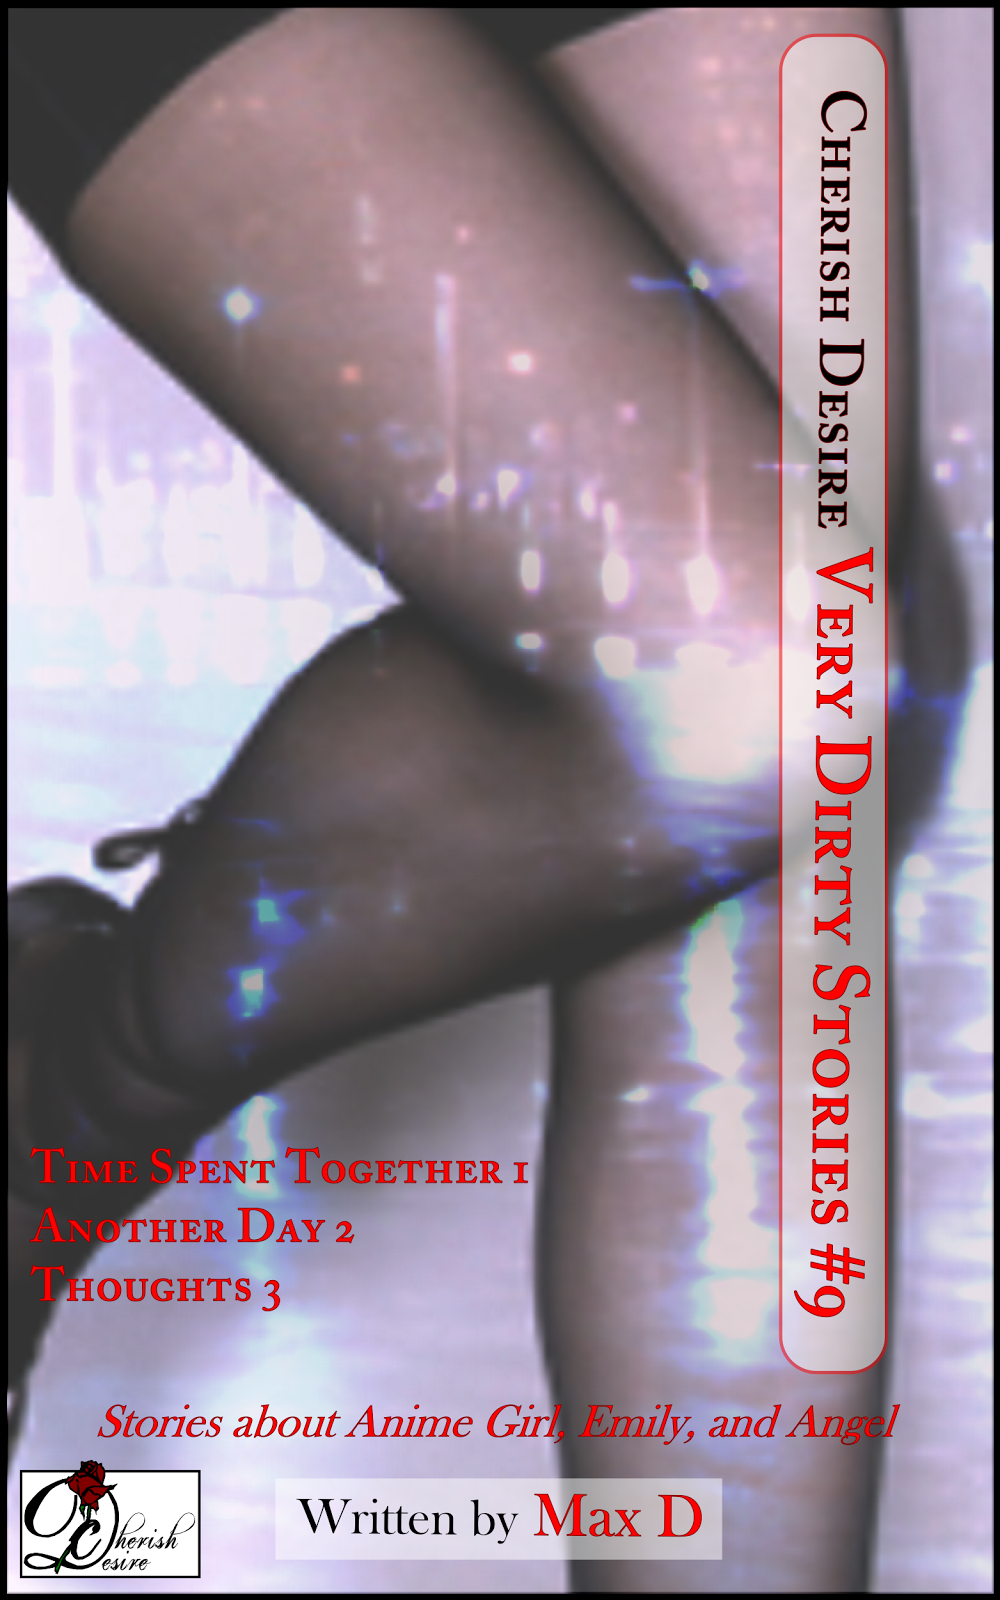 Cherish Desire: Very Dirty Stories #9, Max D, erotica